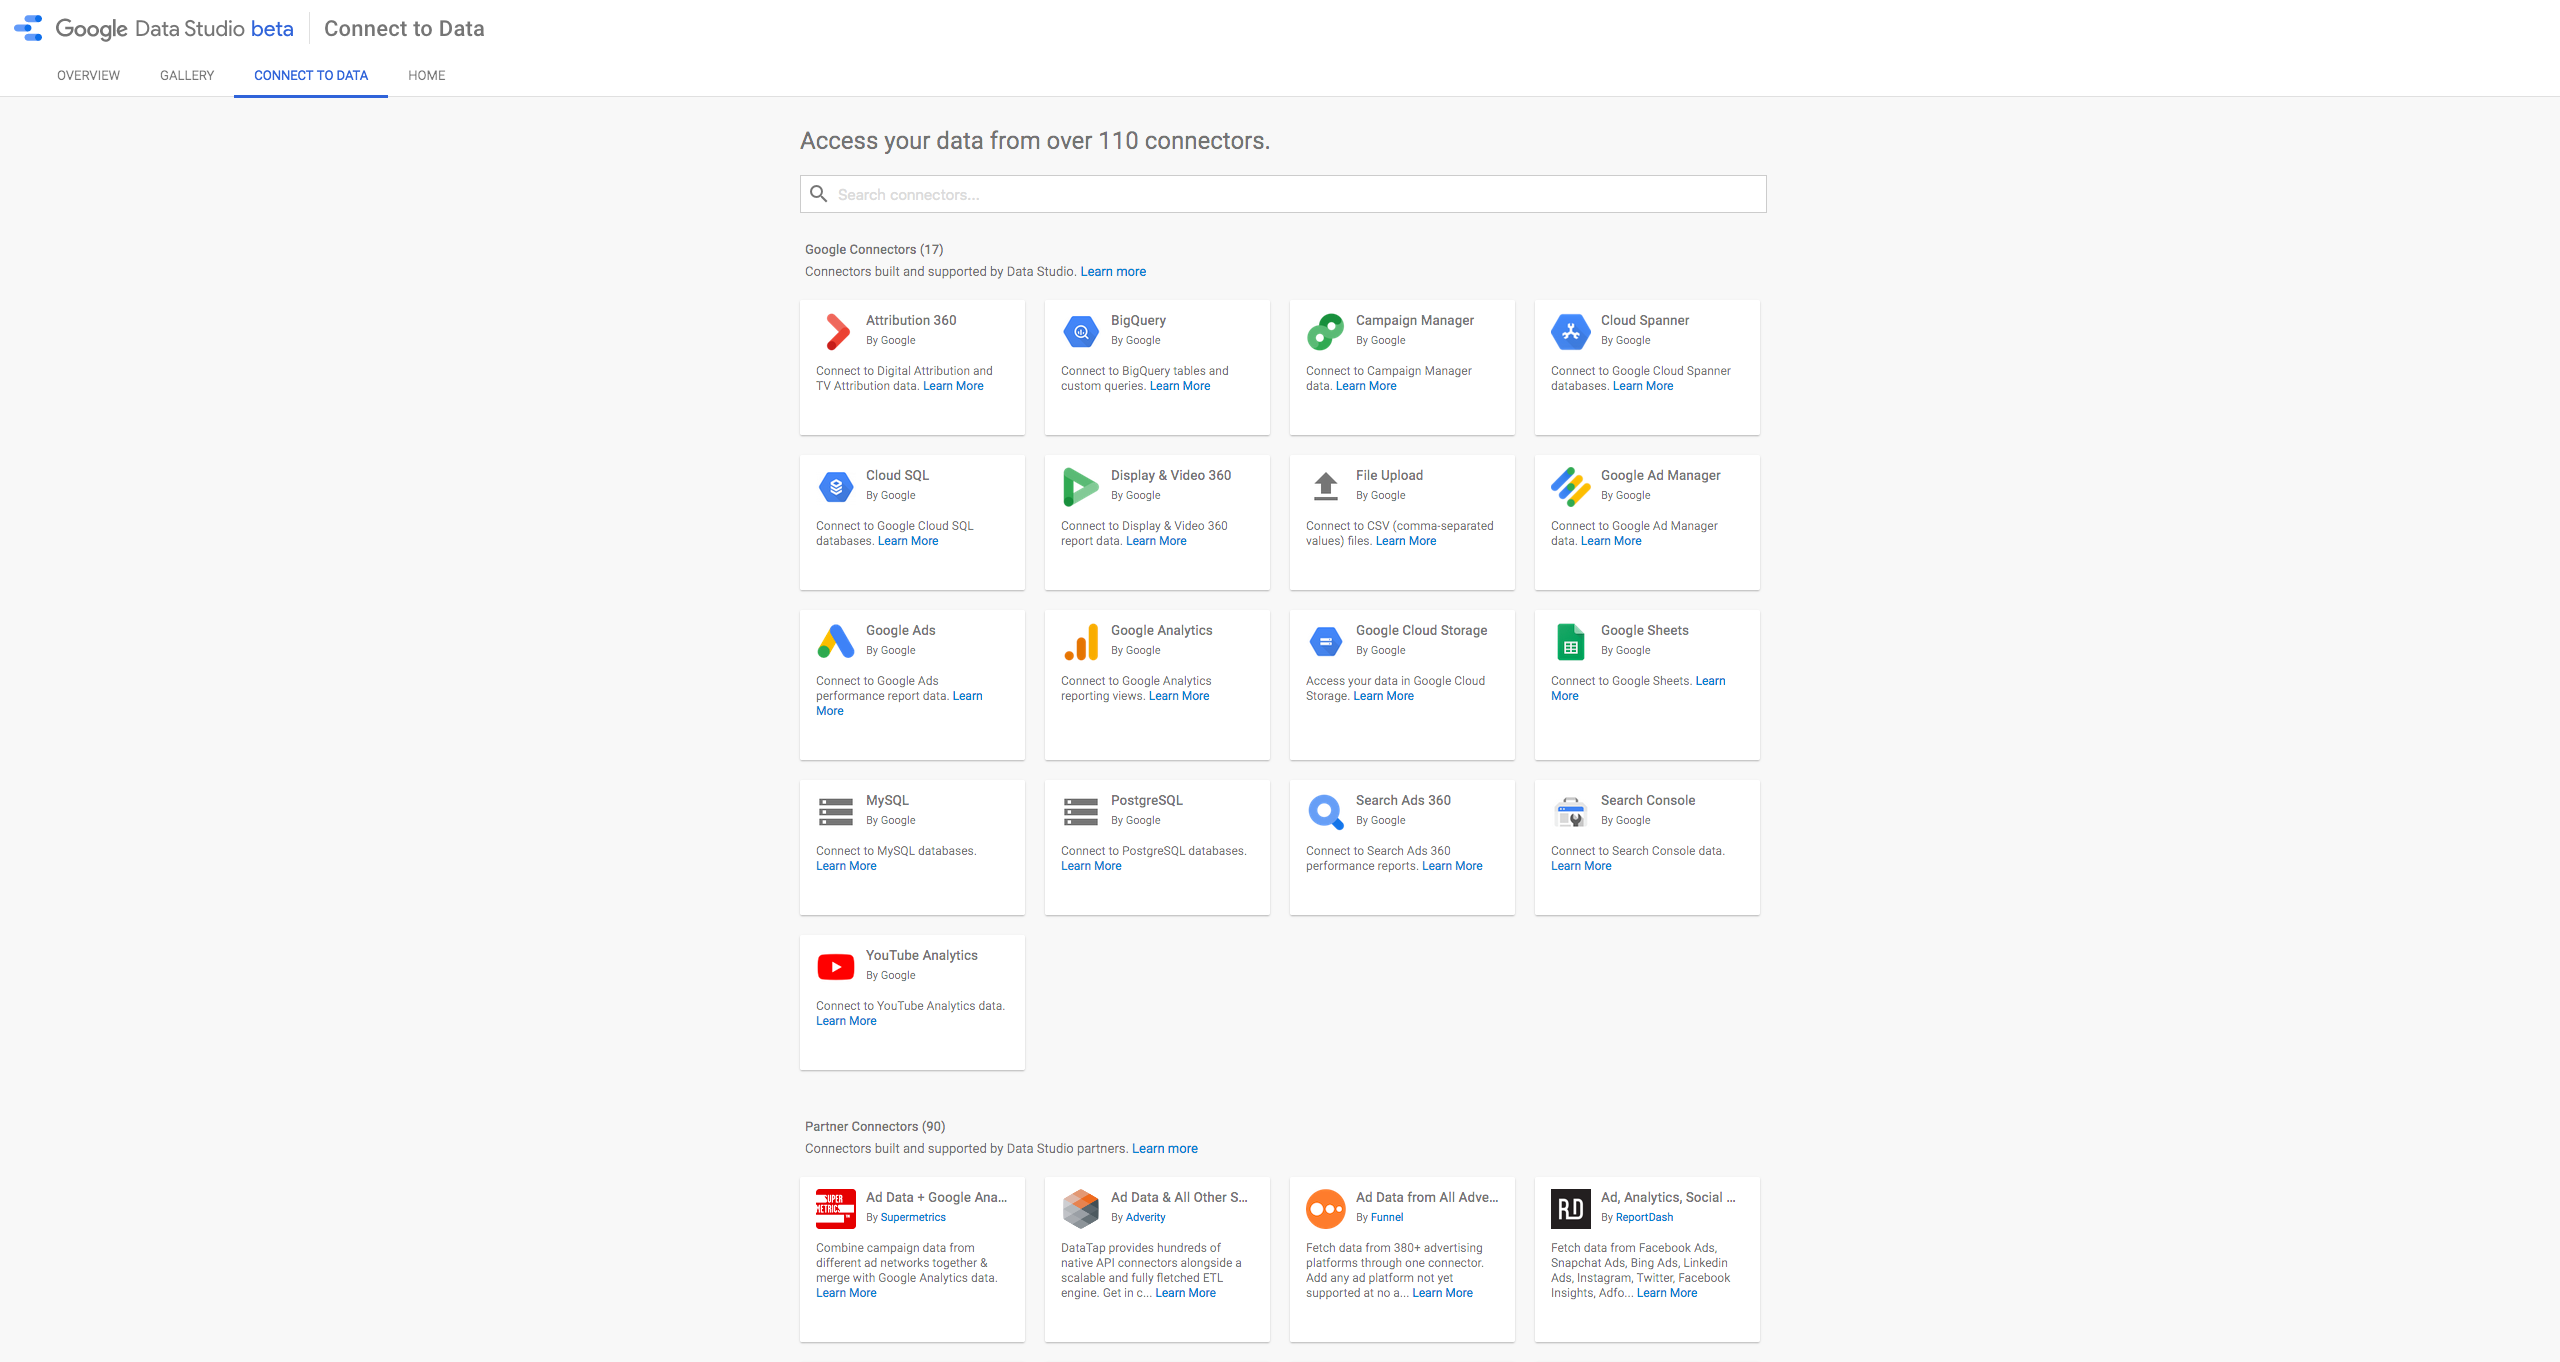 Google Data Studio Software - Data can be accessed via over 110 connectors from Google, a growing number of Data Studio partners, and those from the open source community